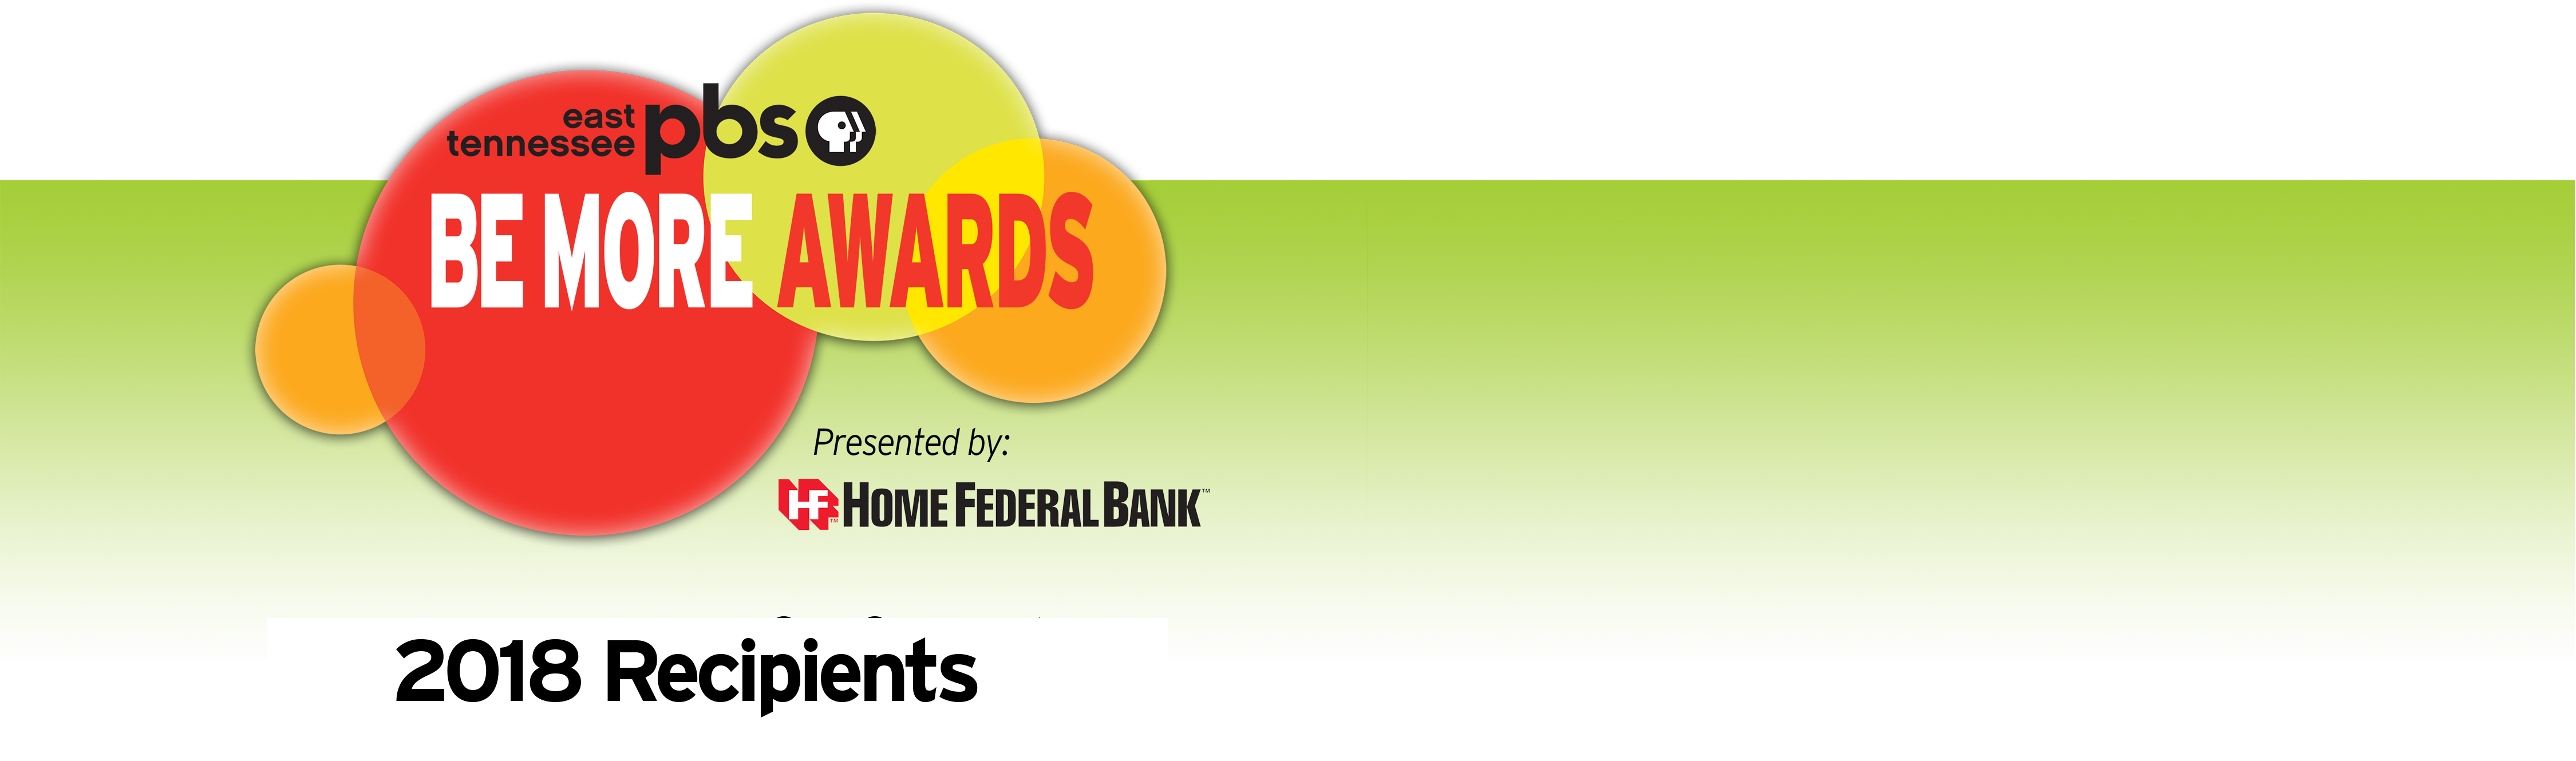 Home Federal Bank presents 2018 East Tennessee PBS' Be More Award Winners